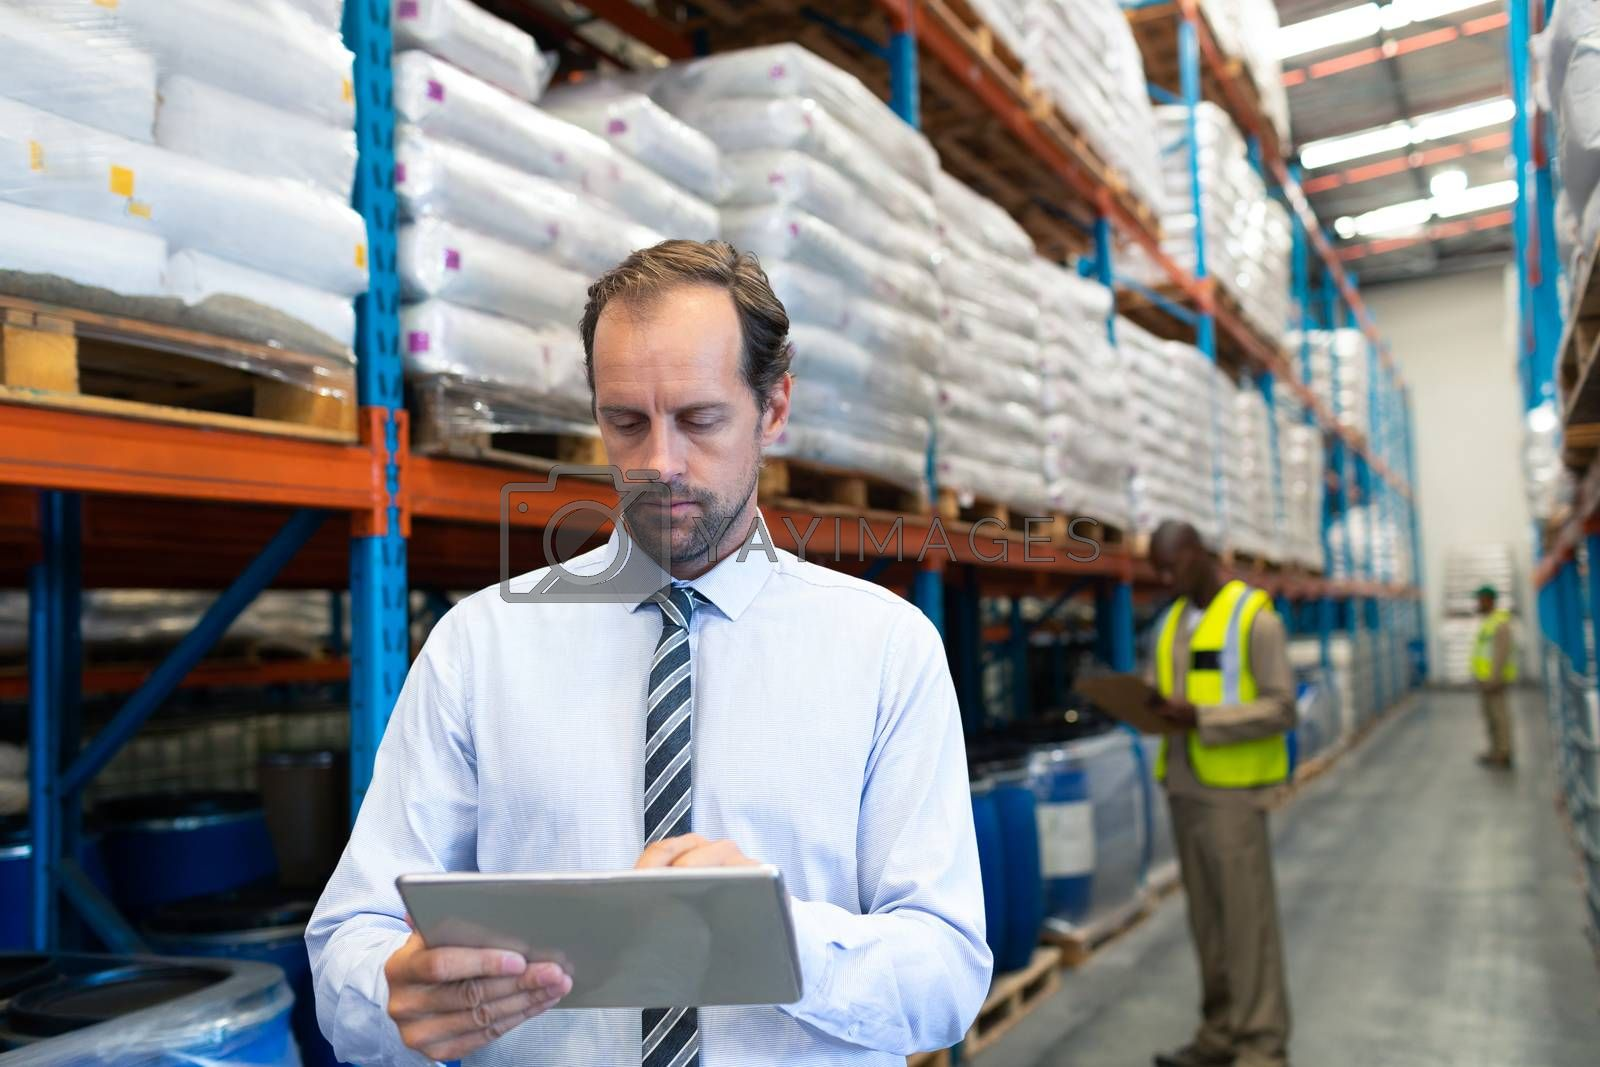 Front view of mature Caucasian male supervisor working on digital tablet in warehouse. This is a freight transportation and distribution warehouse. Industrial and industrial workers concept